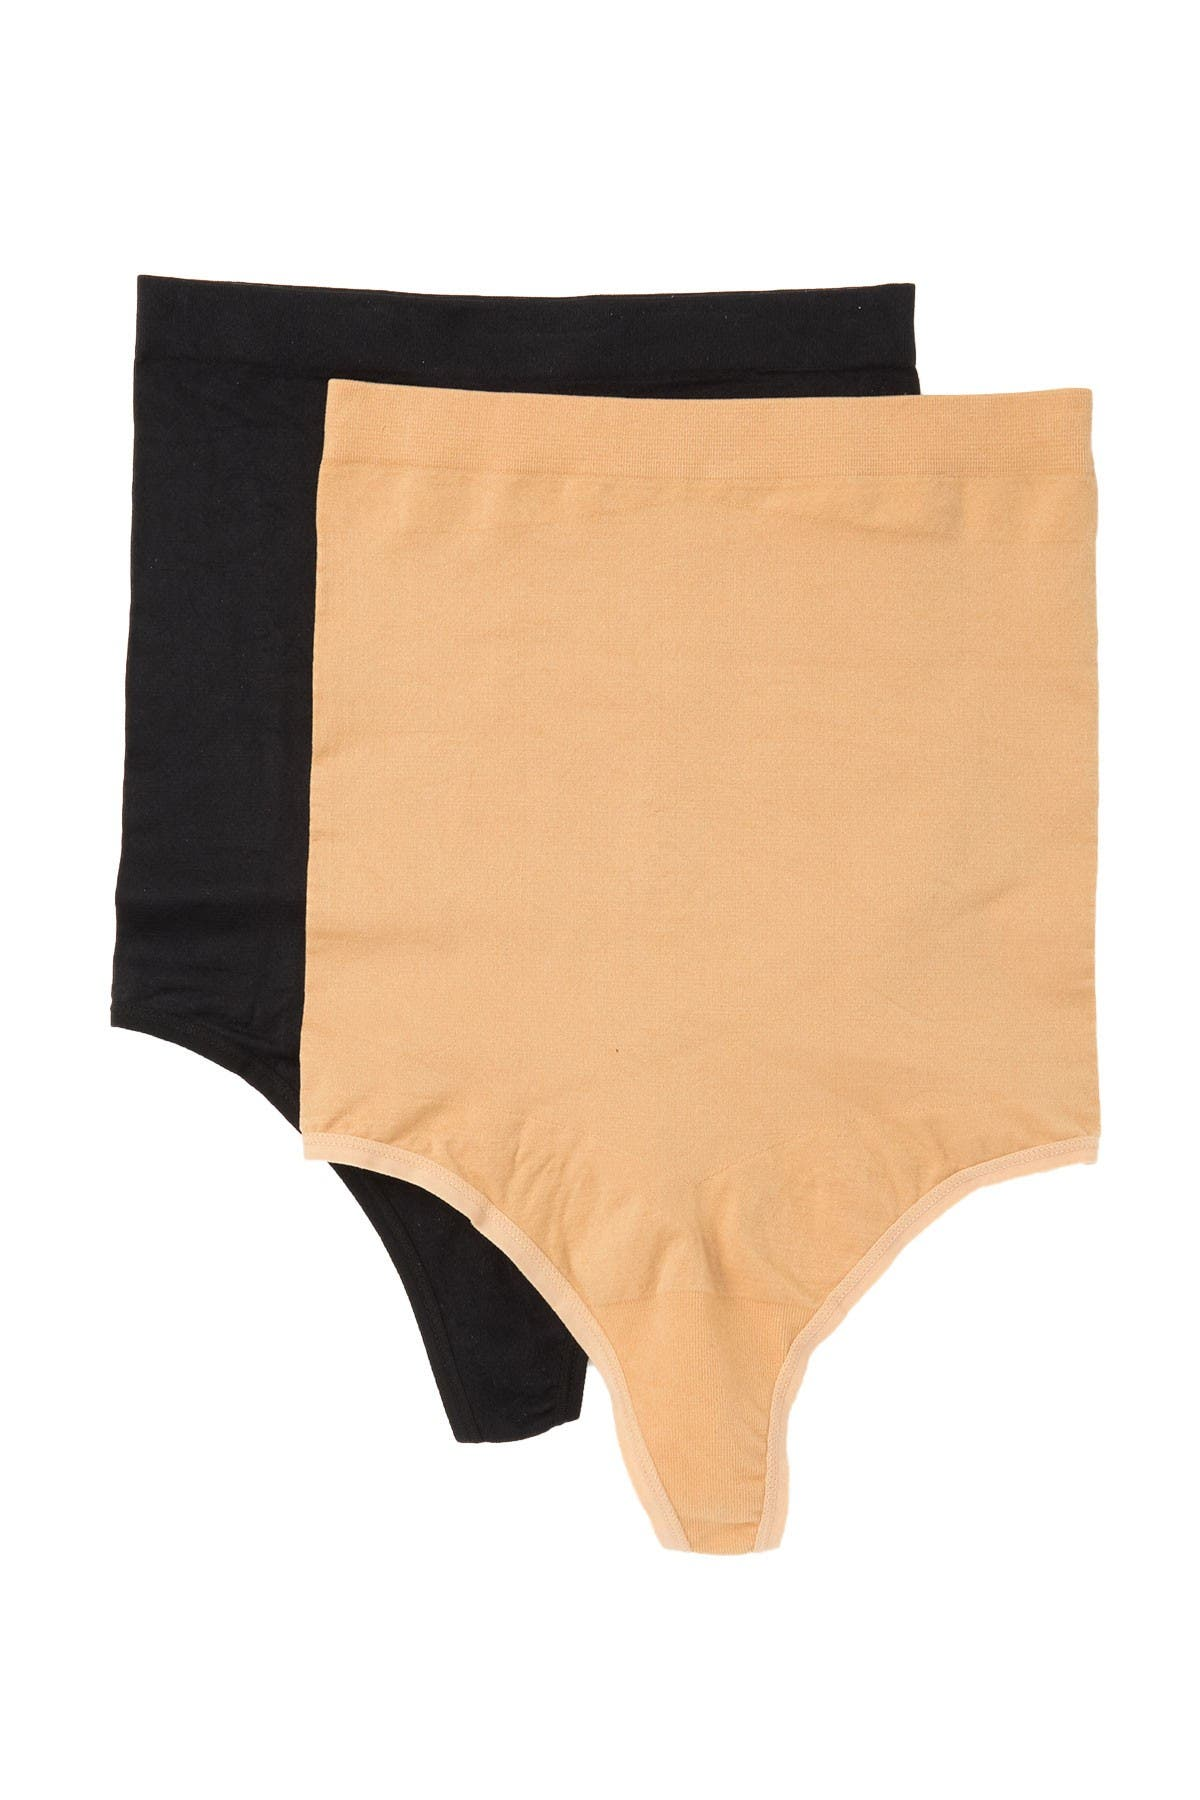 NWT $28 SKINNYGIRL 3-PACK SEAMLESS THONG PANTIES NO VPL SMOOTHERS /& SHAPERS